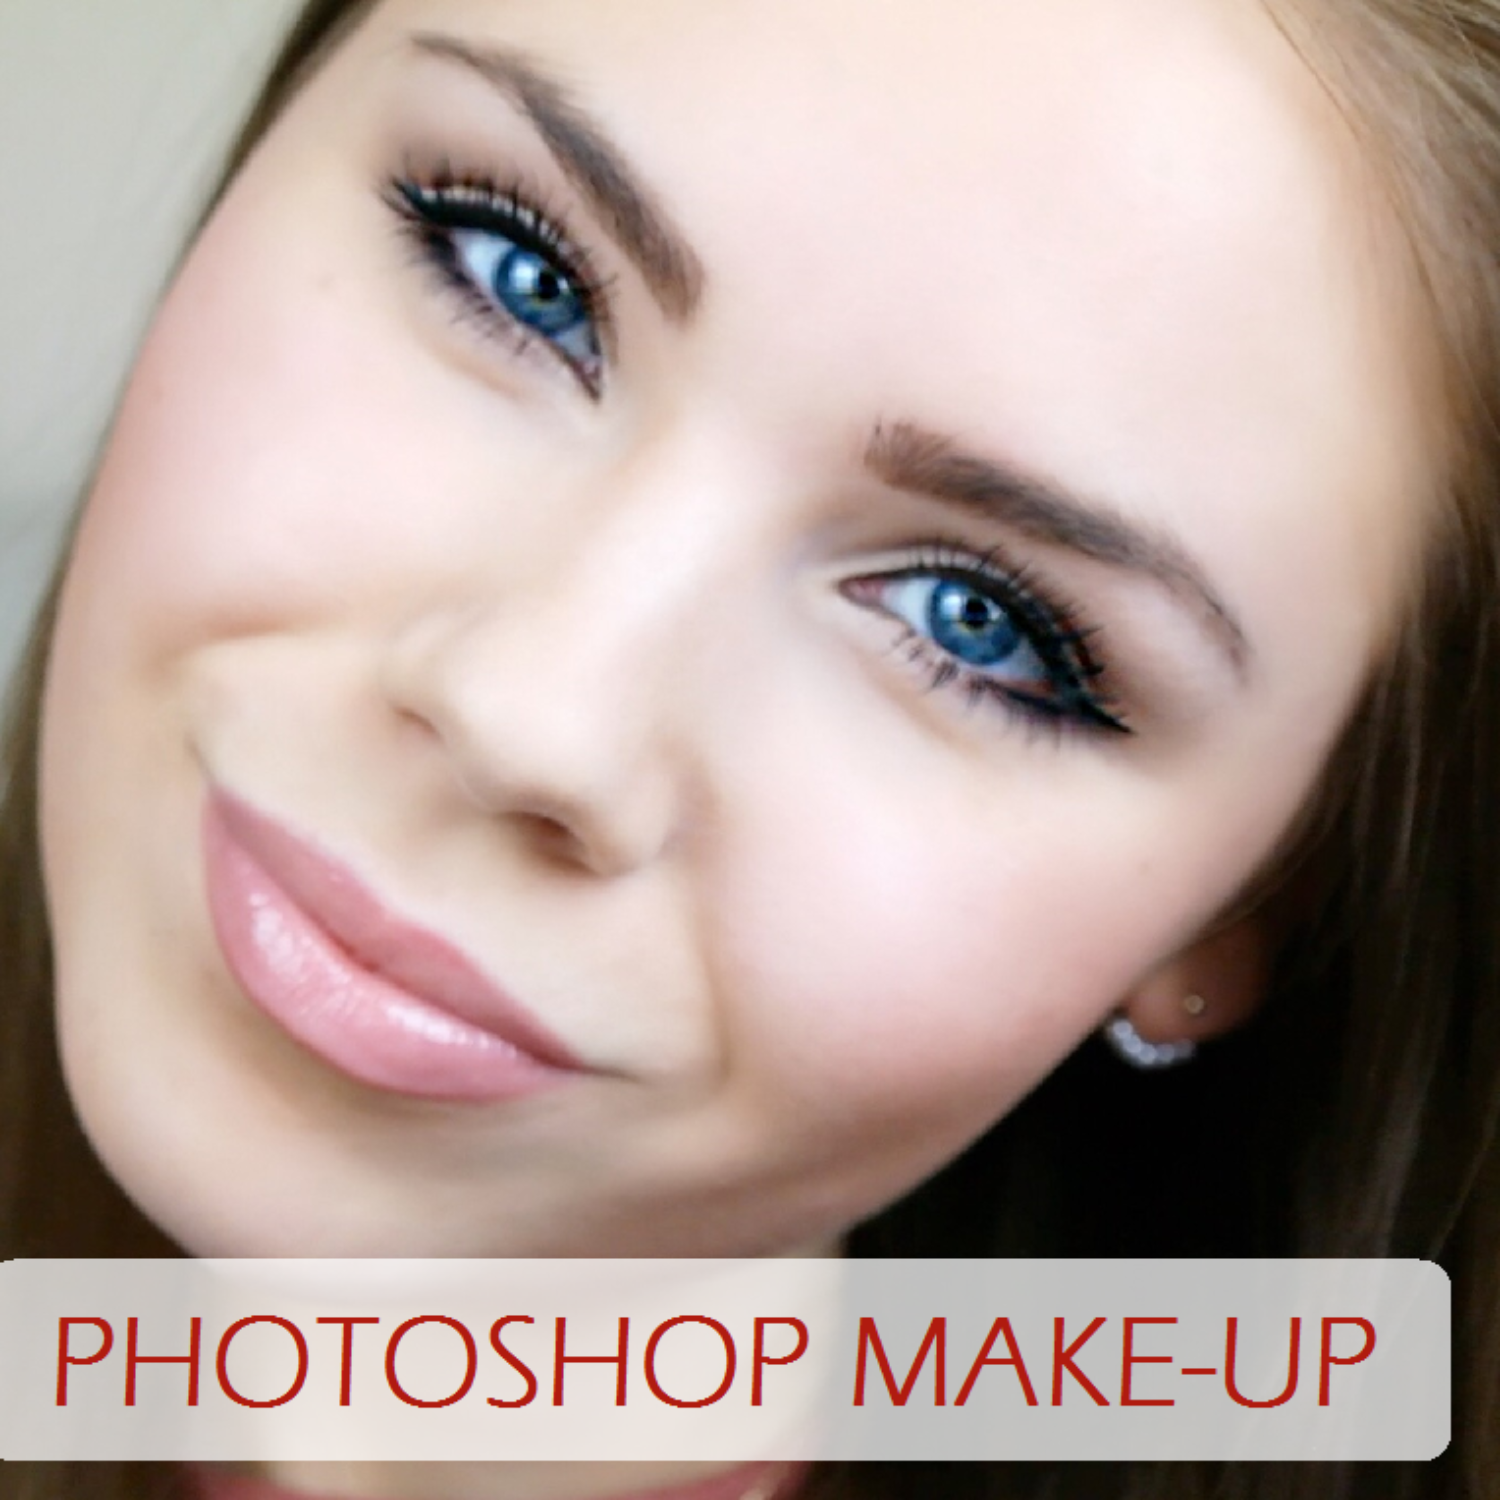 Get Ready With Me – Photoshop Make-up